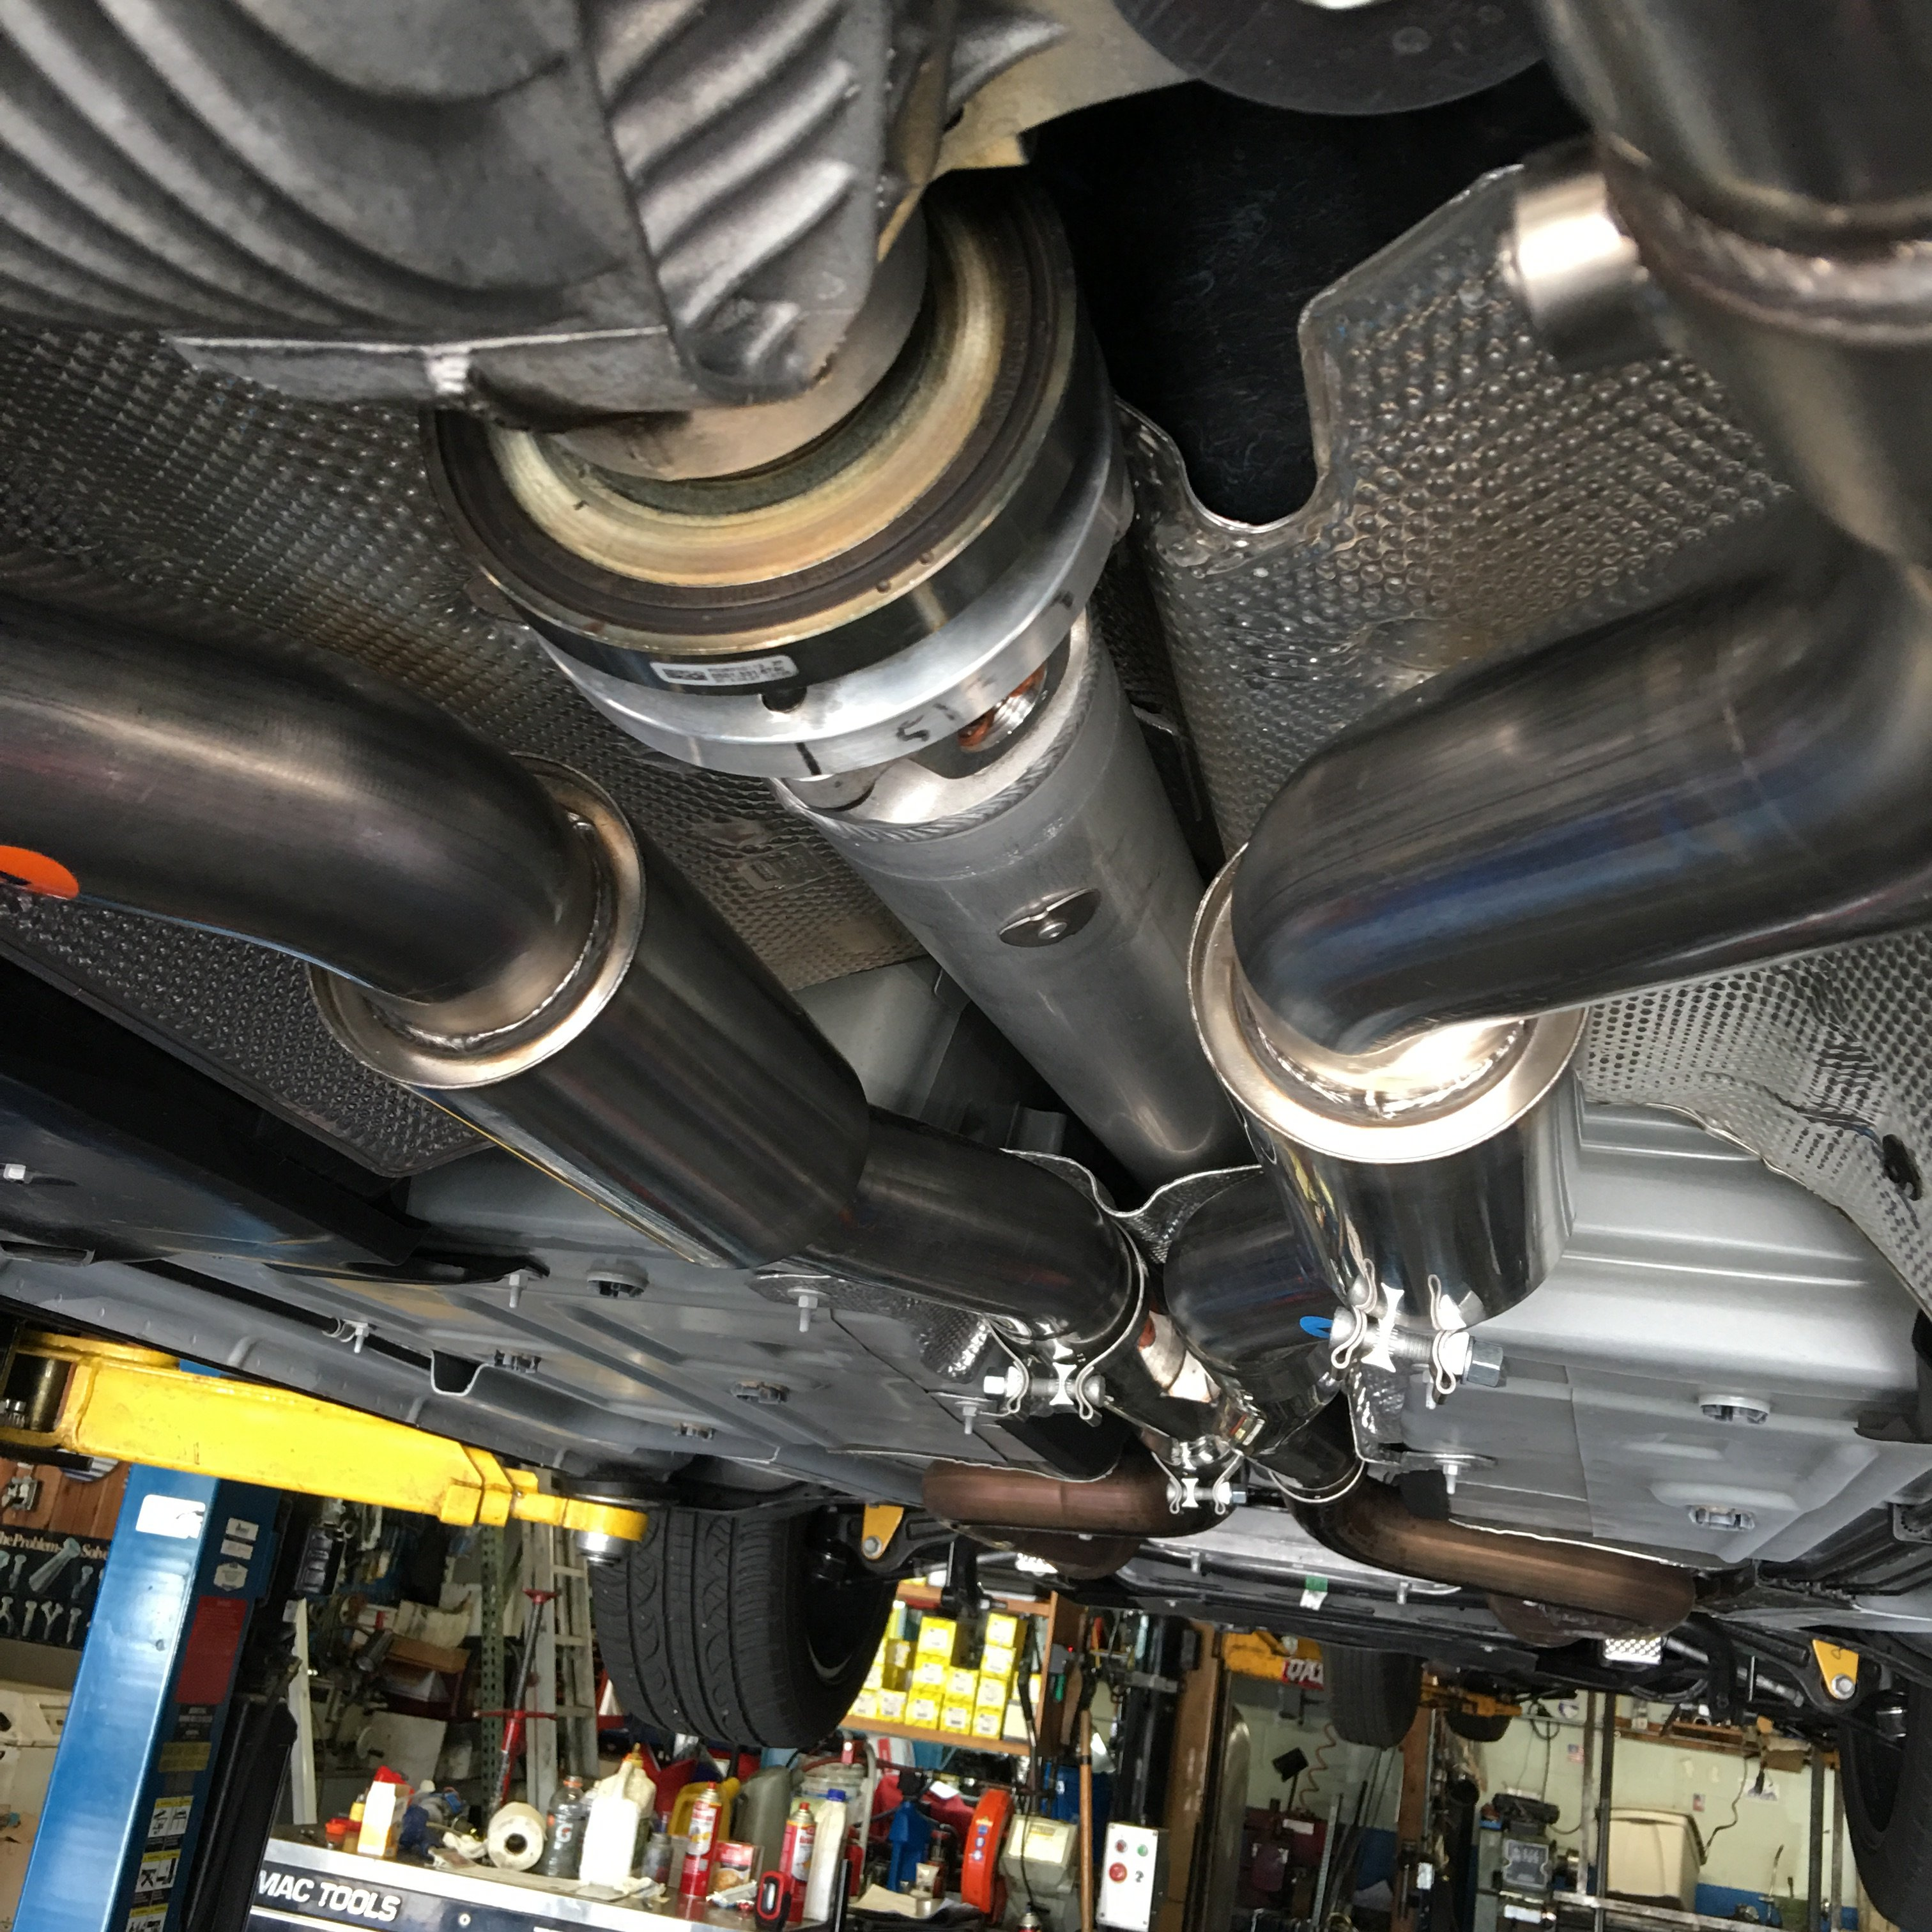 Borla ATAK Cat back exhaust install | Page 5 | SRT Hellcat Forum